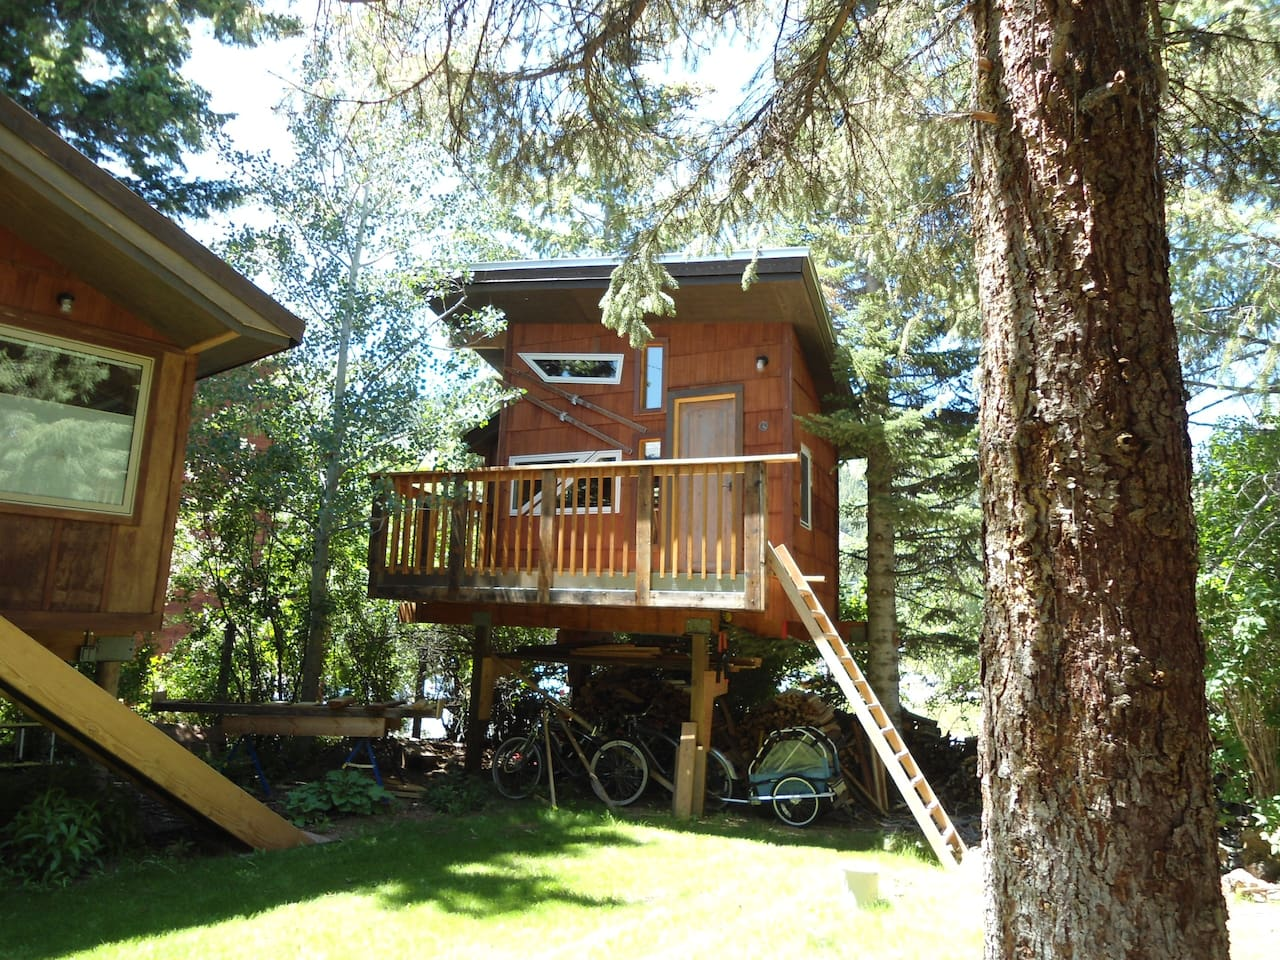 20 rad airbnbs for your next mtb vacation page 2 of 4 for Single tree treehouse ideas